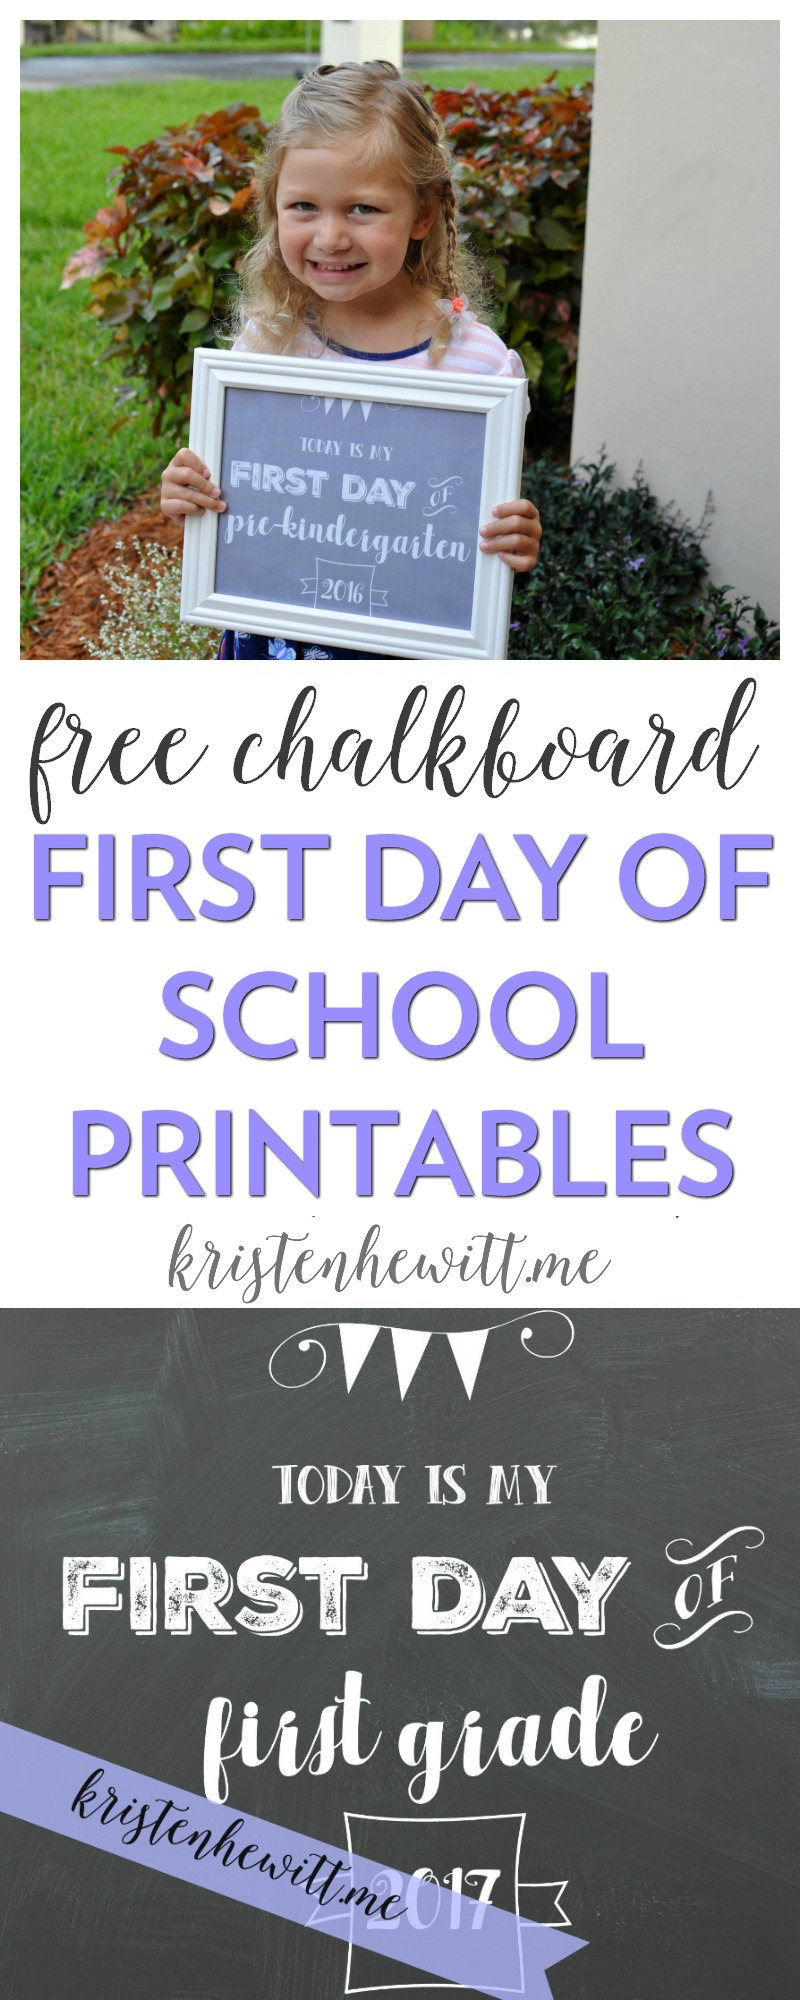 Looking for the perfect way to commemorate the first day of school? Print out one of these free chalkboard first day of school printables!